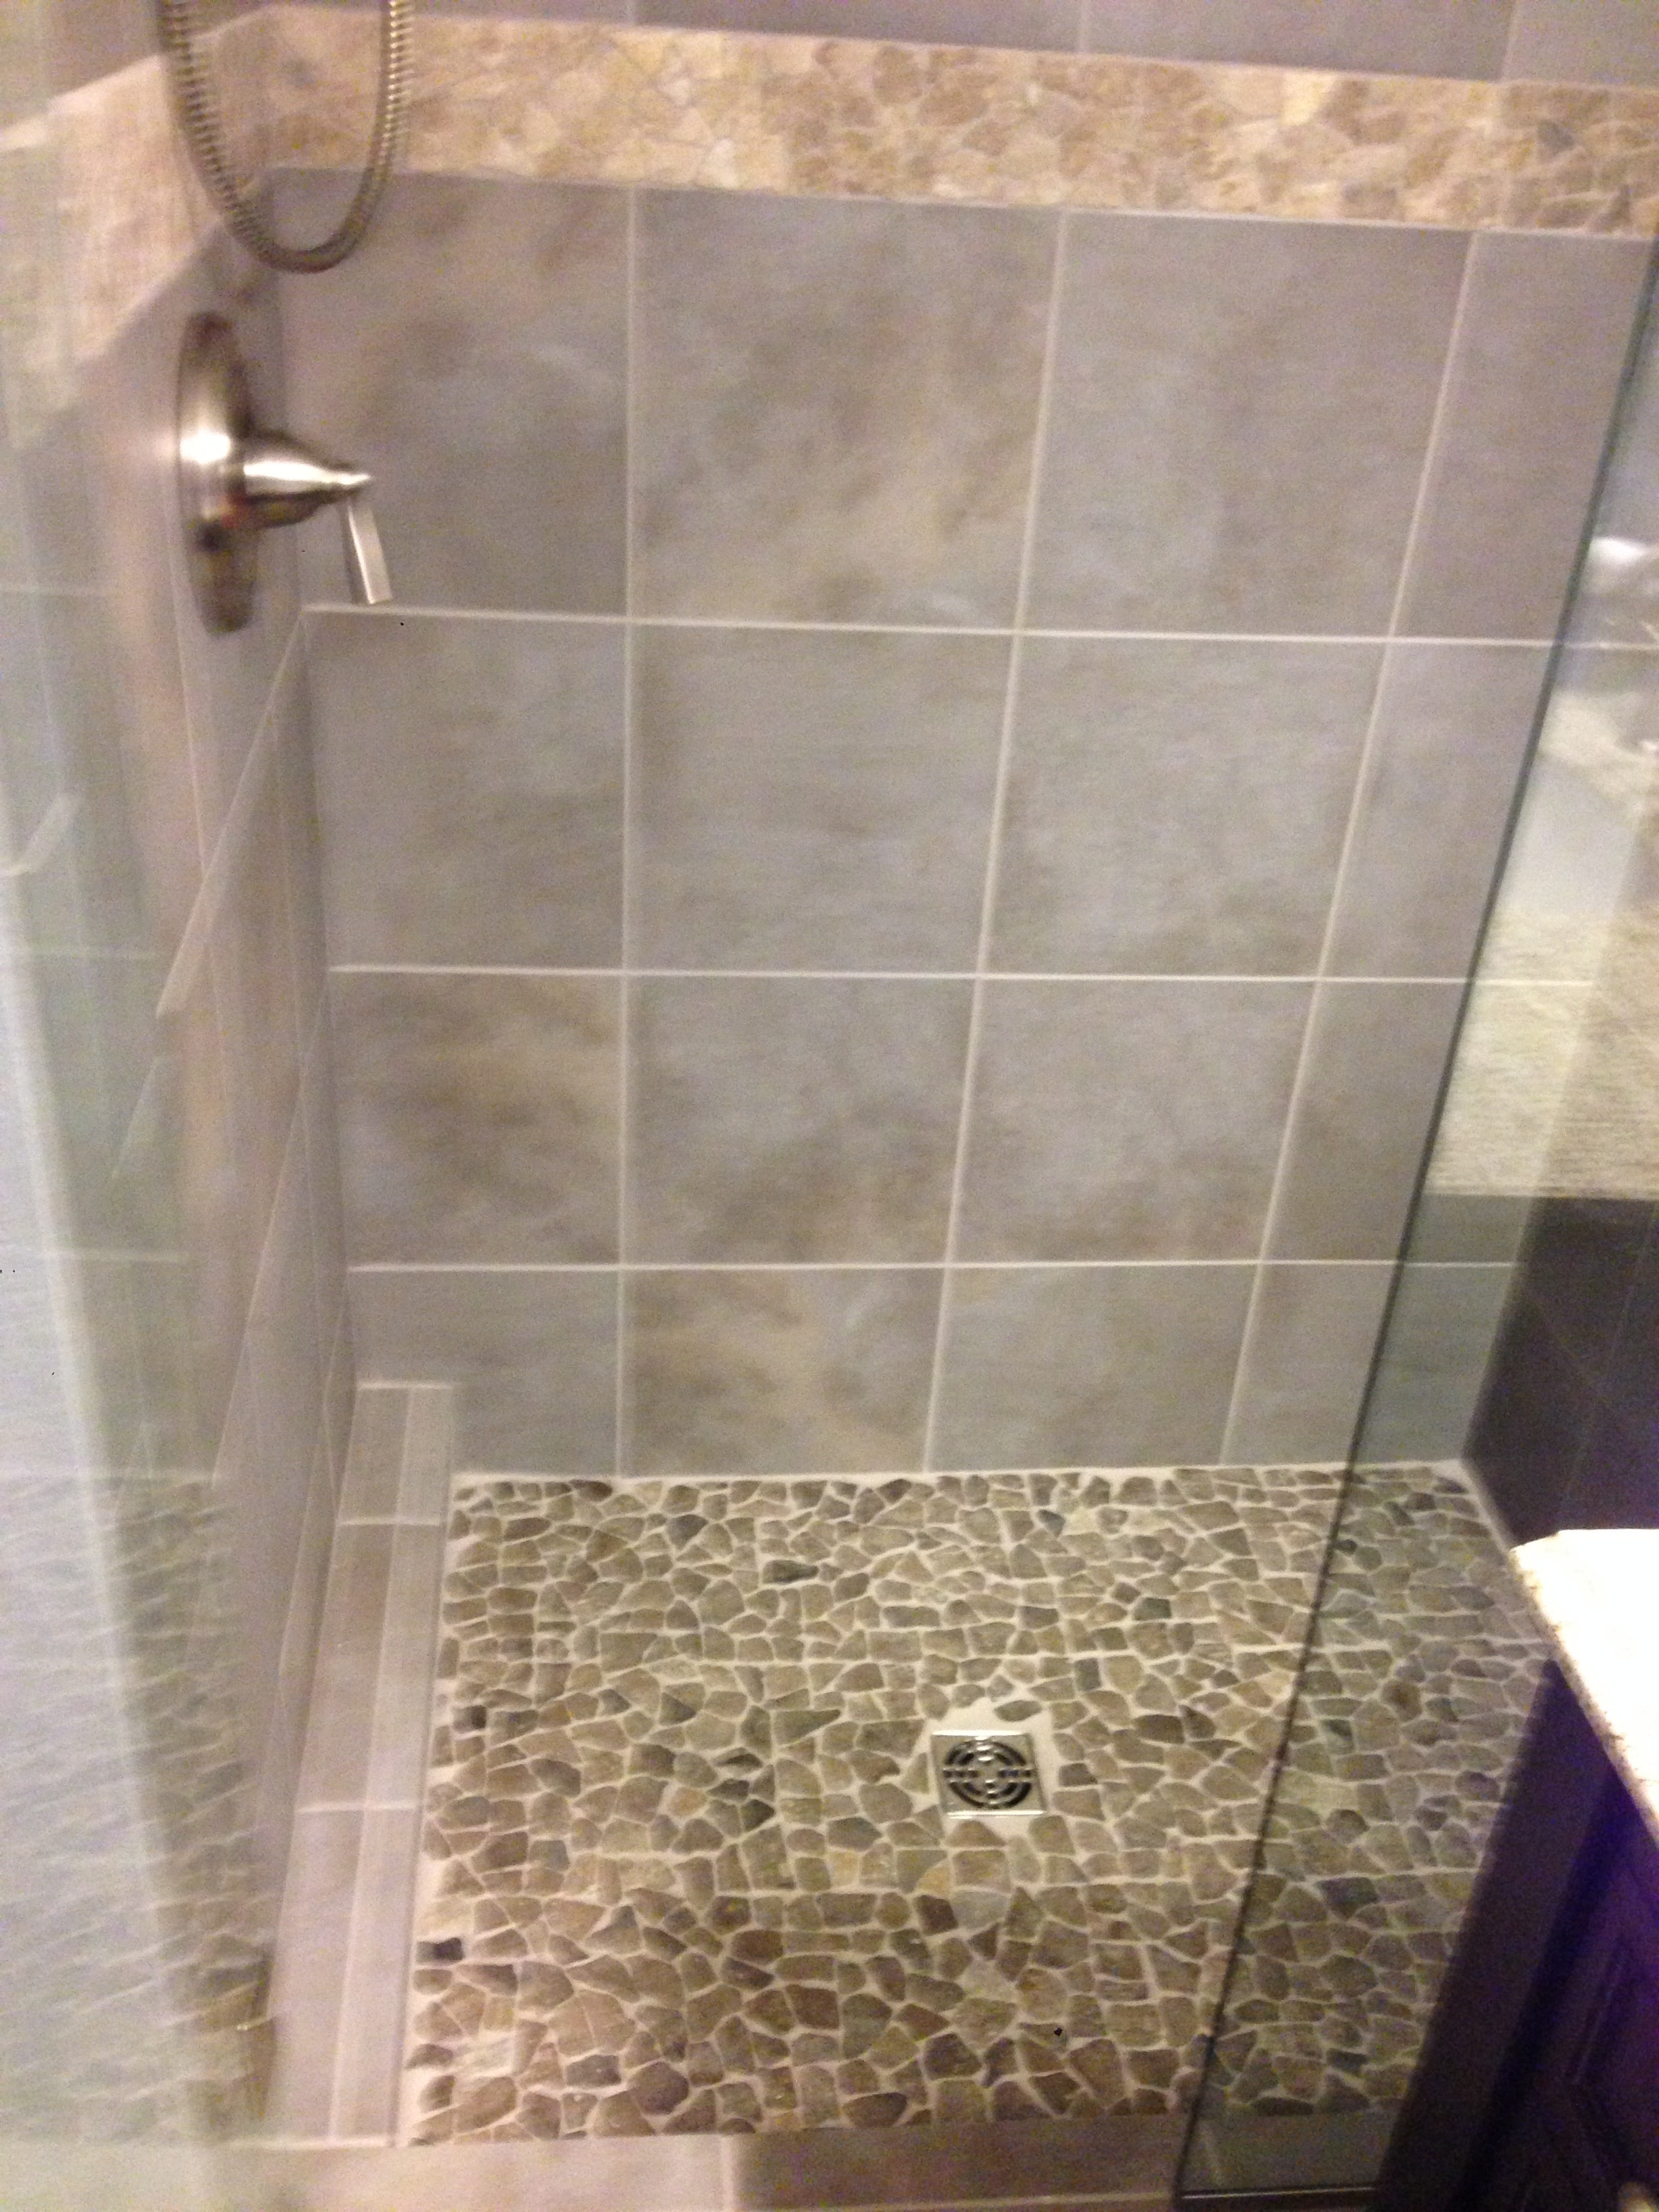 Shower Floor Tiles Which Why And How: Tile Shower Enclosure With Stone Shower Pan